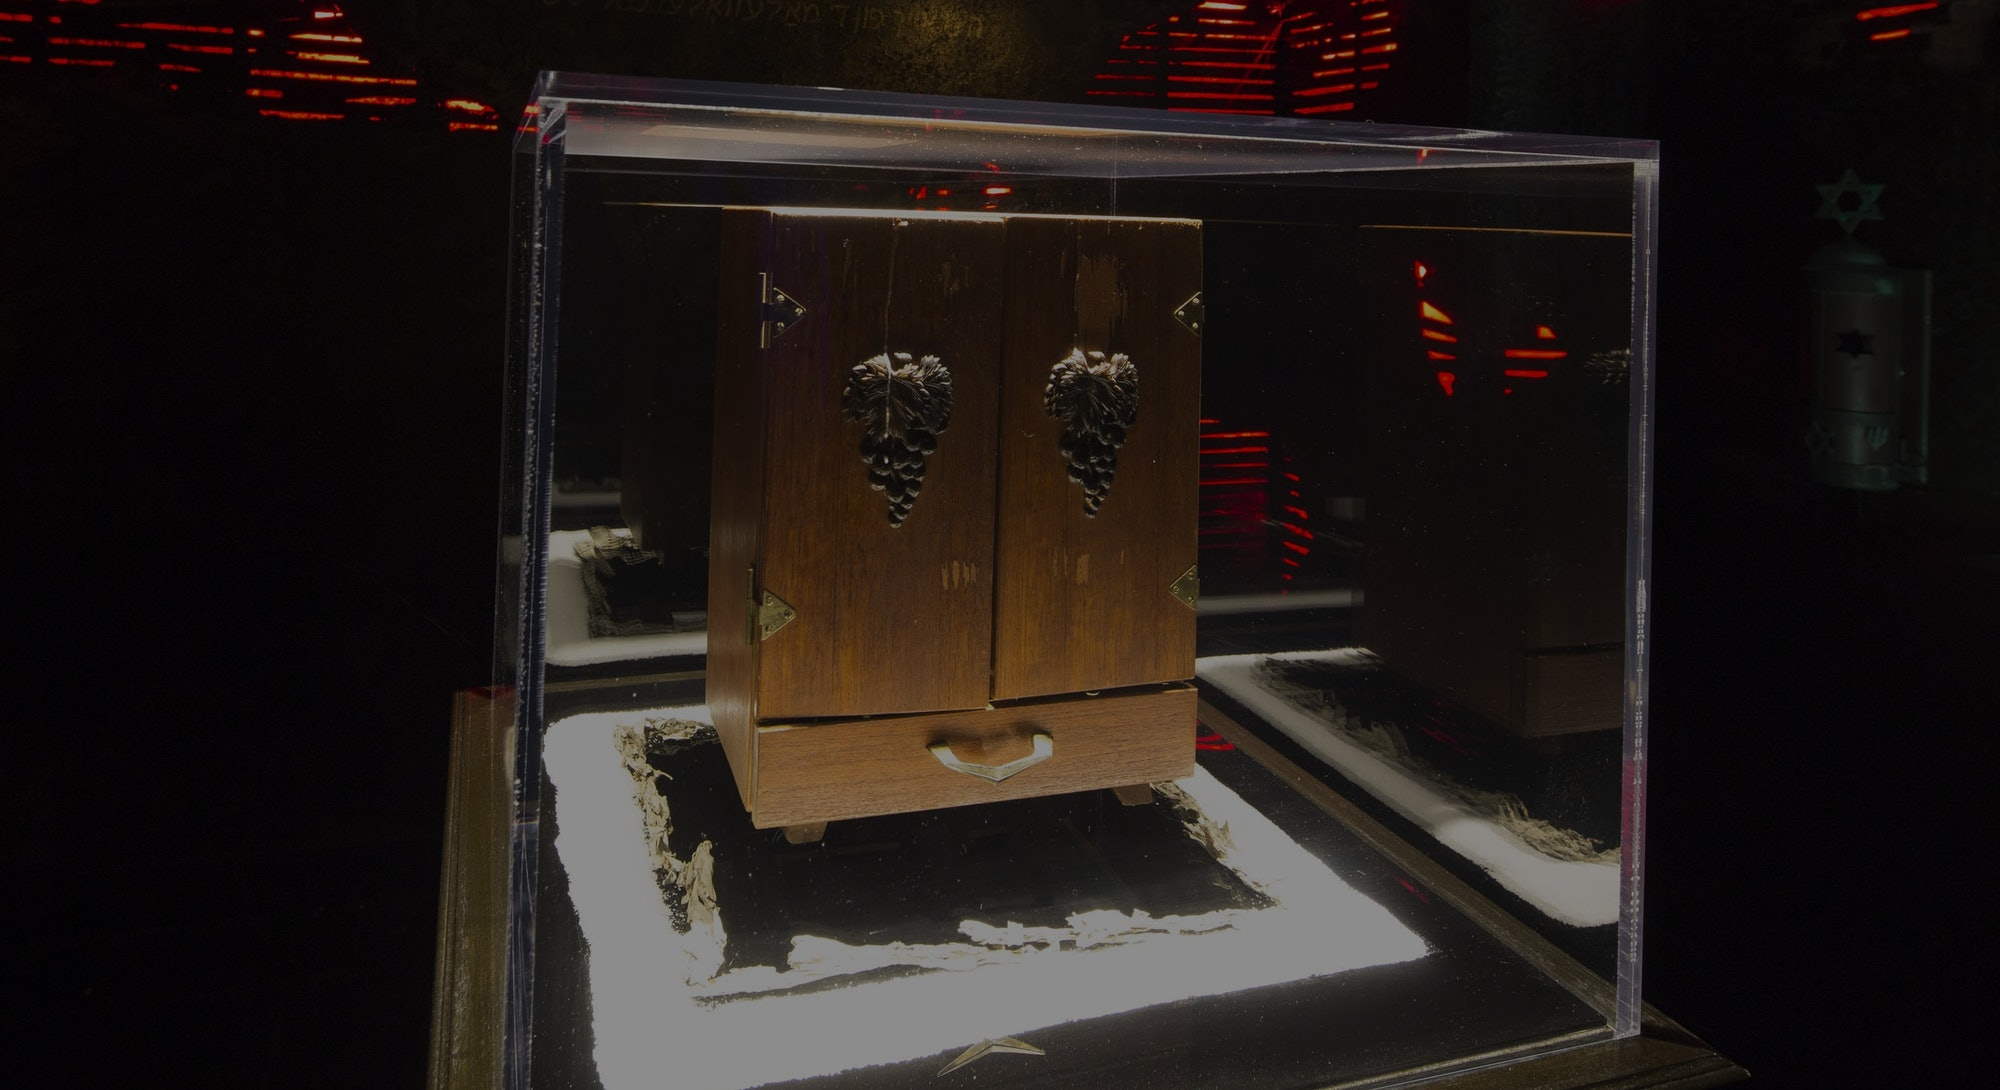 The Dybbuk Box on display at the Haunted Museum in Las Vegas